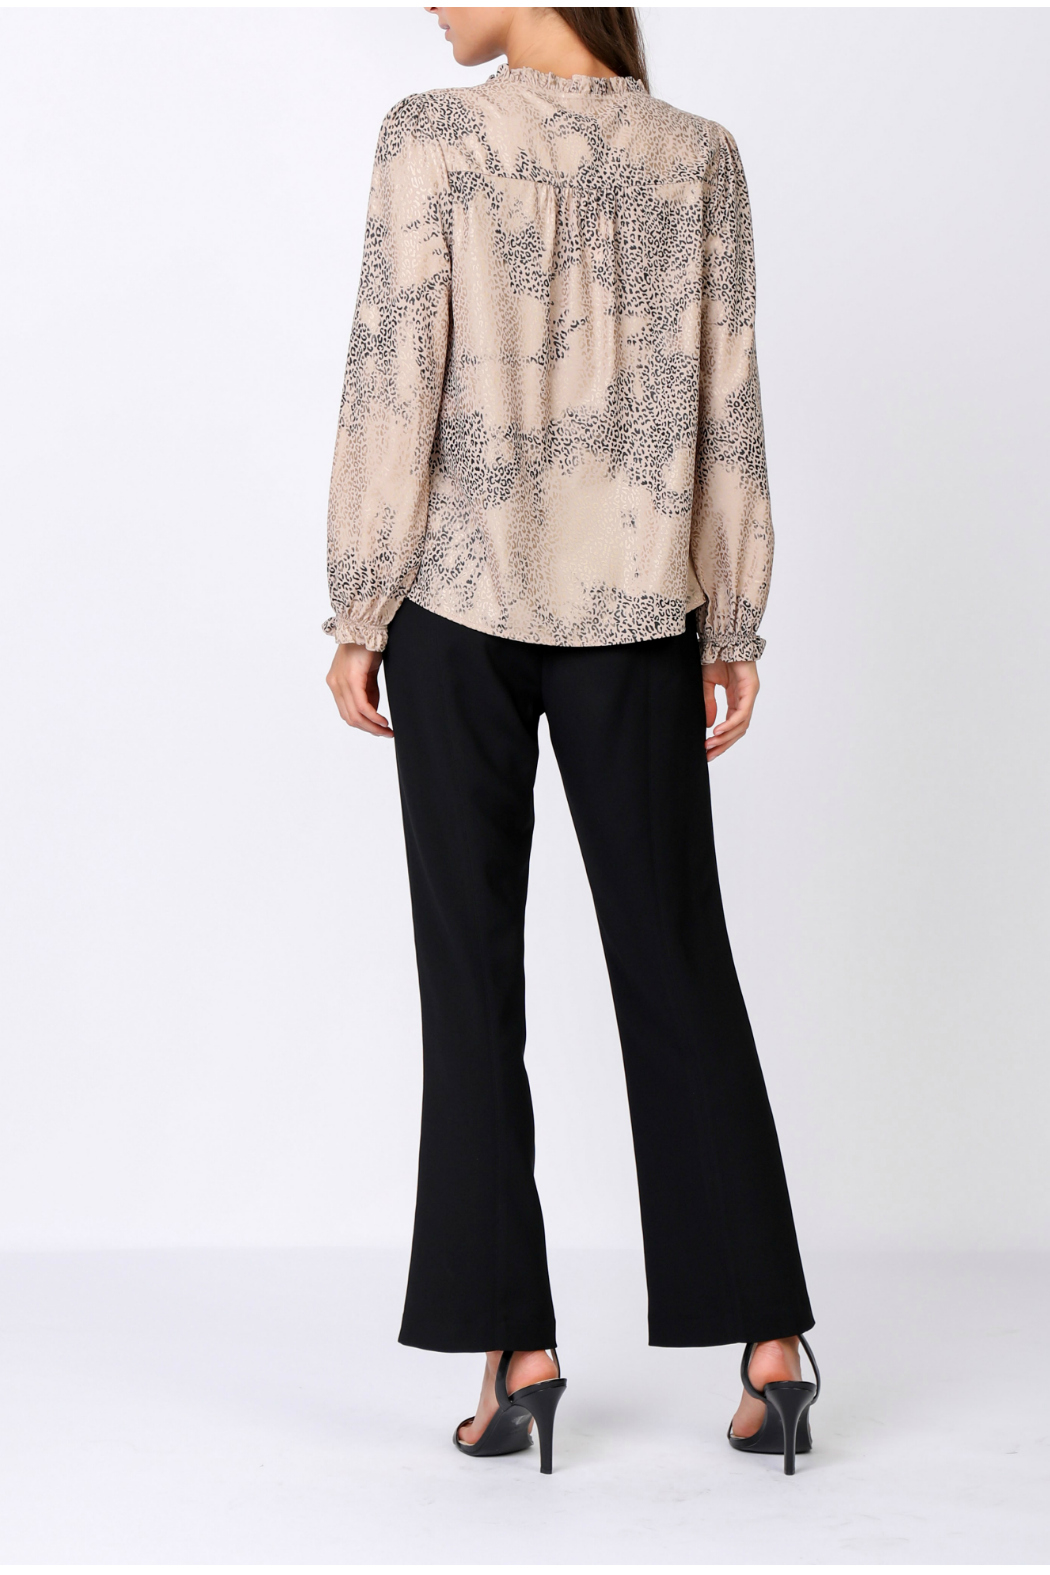 Current Air snakeskin print blouse - Front Full Image